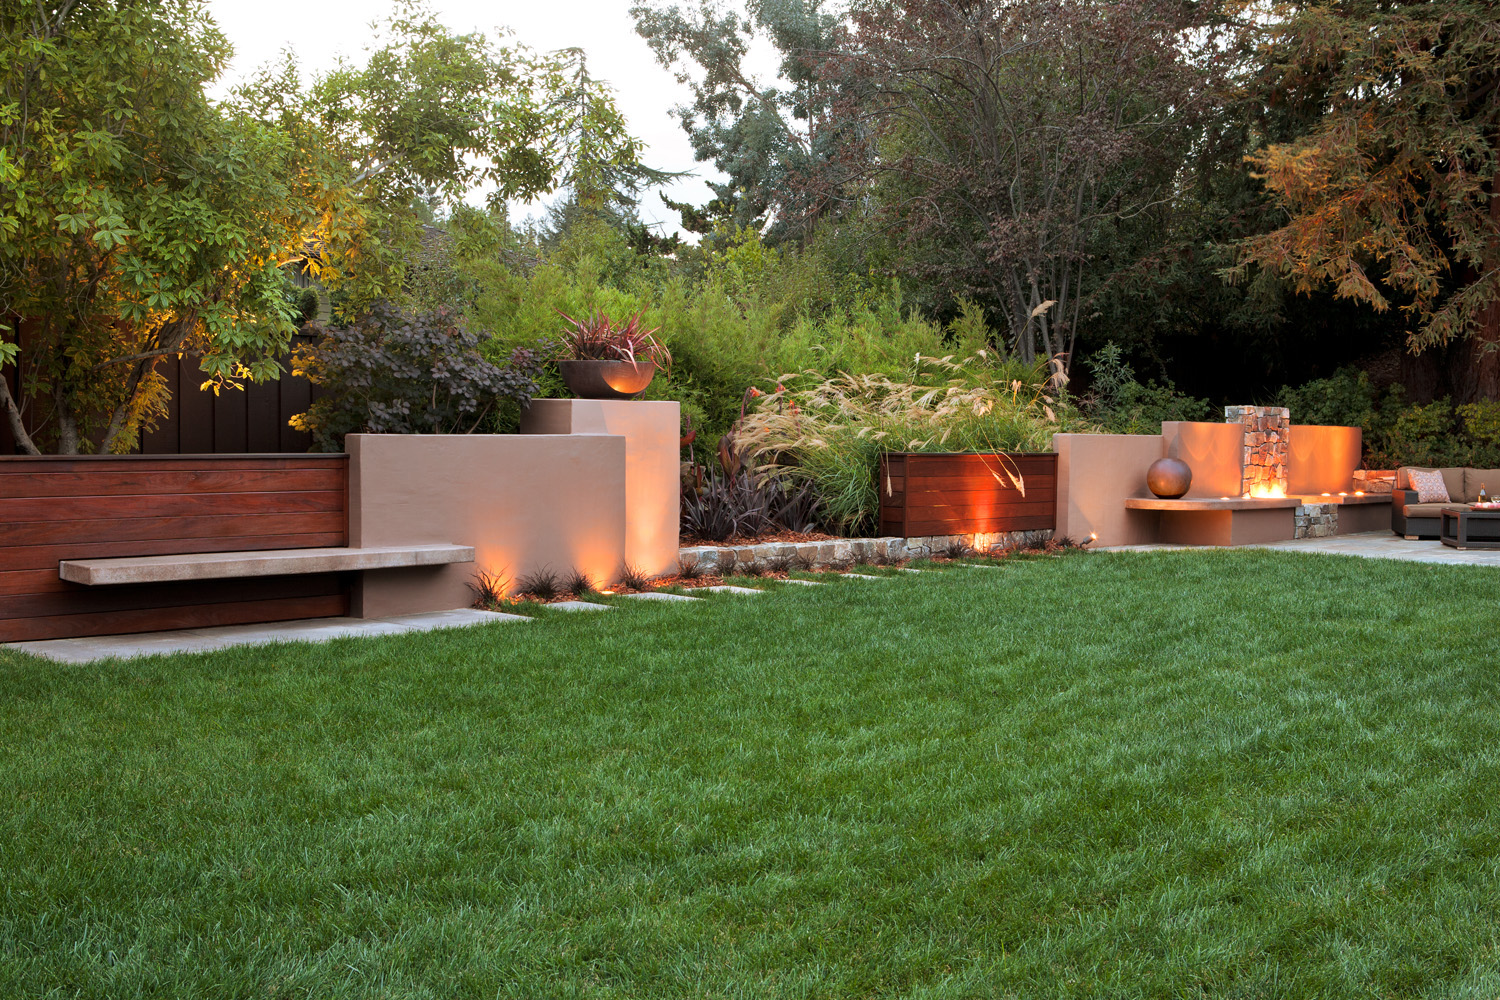 38 ideas for firepits sunset magazine for 38 garden design ideas